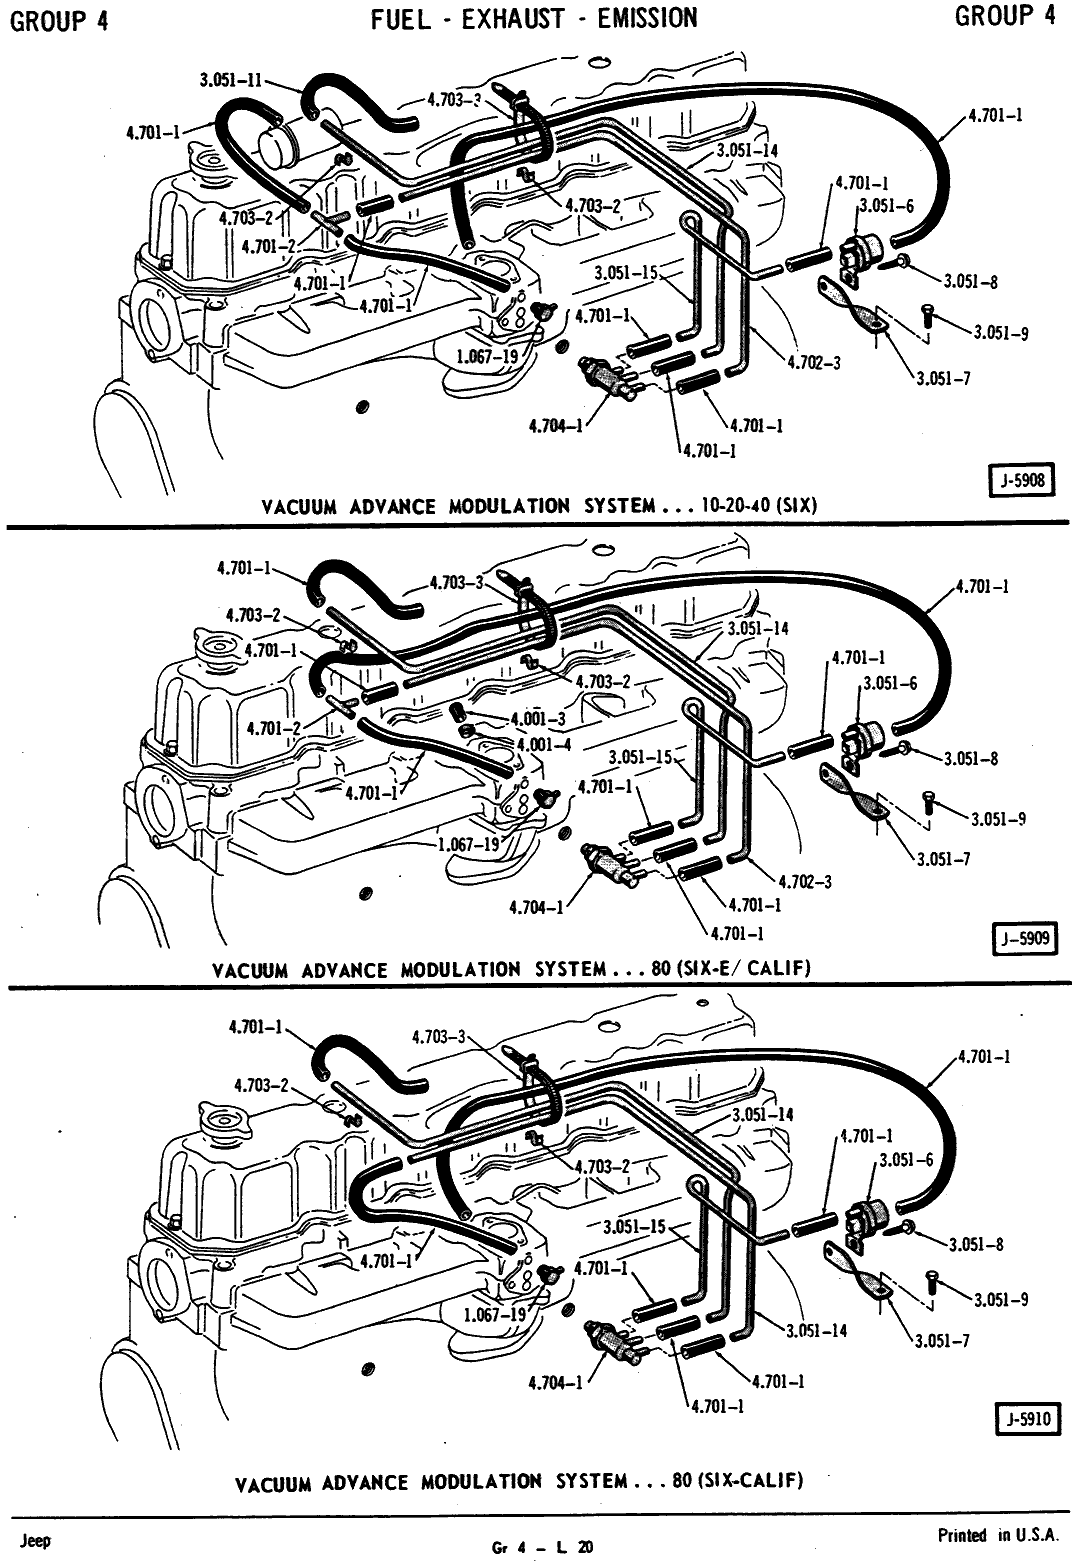 hight resolution of 1997 jeep grand cherokee vacuum line diagram wiring diagram source 2004 jeep grand cherokee grill diagram